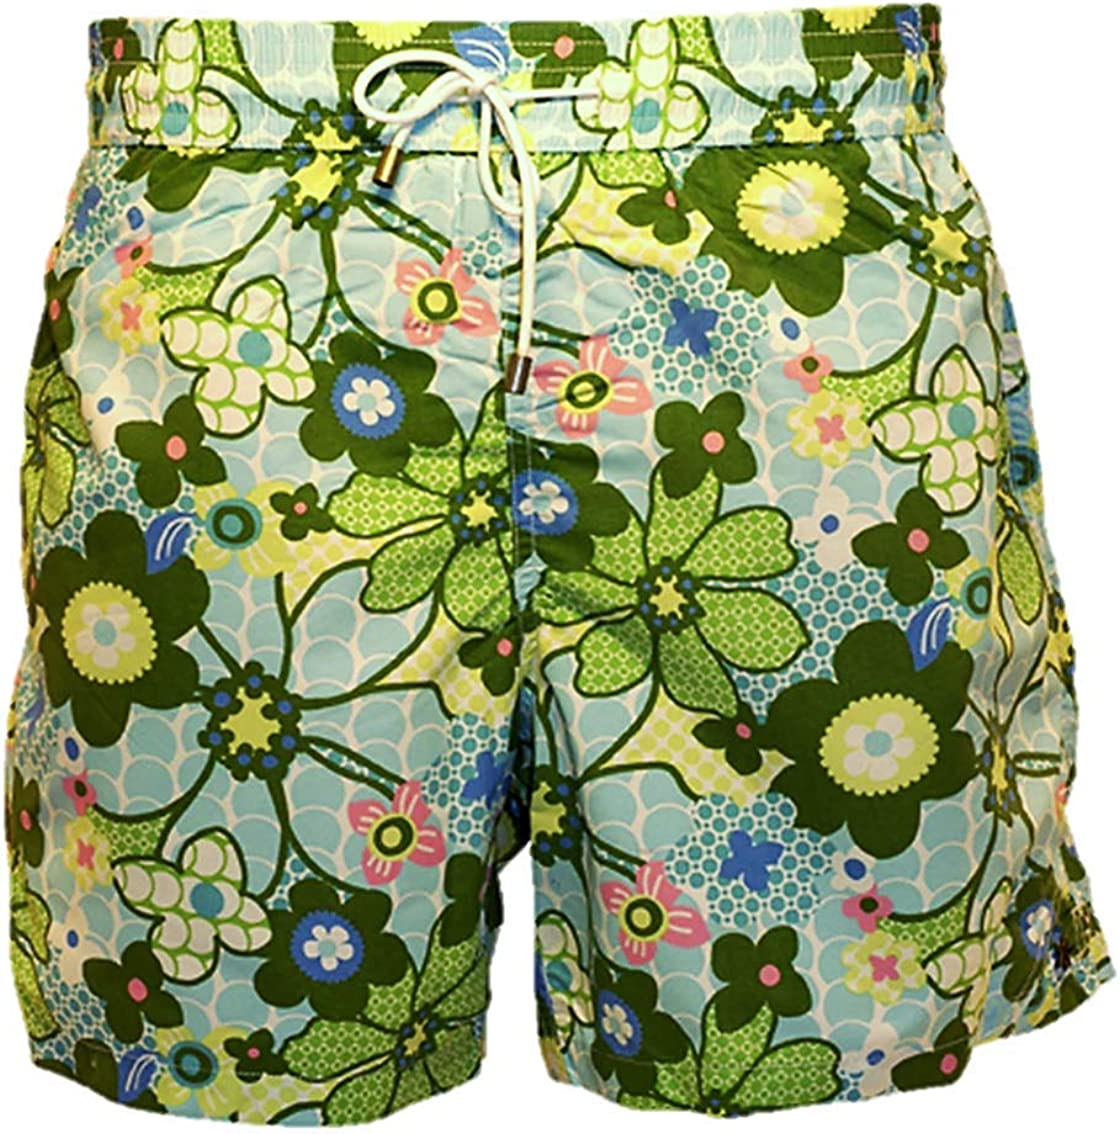 Bayahibe Swimwear Short Slim Fit Quick Dry French Swim Trunk for Men Green Flowered Pattern